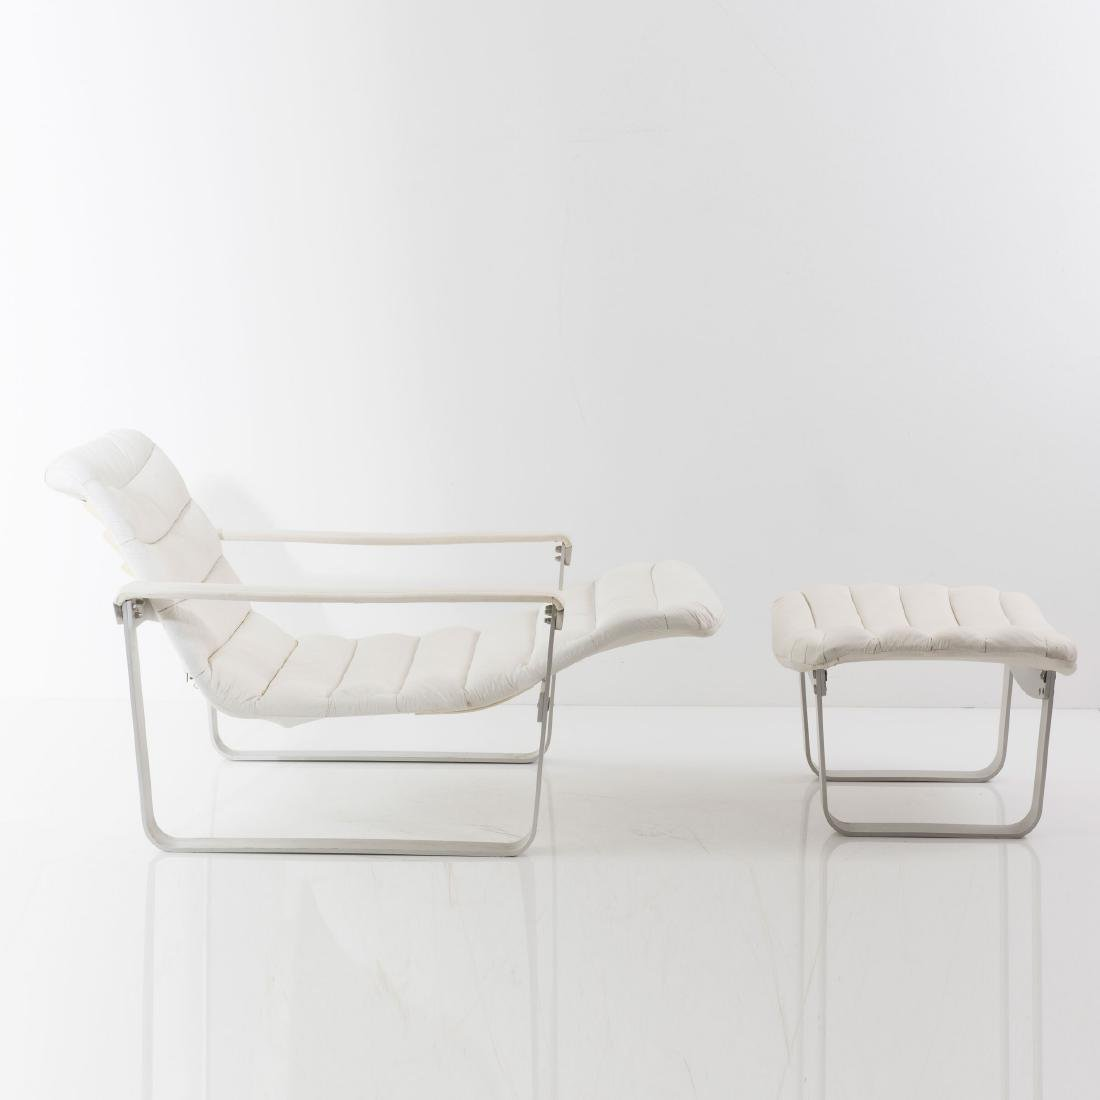 'Metal - pullka' easy chair with ottoman, 1968 - 8